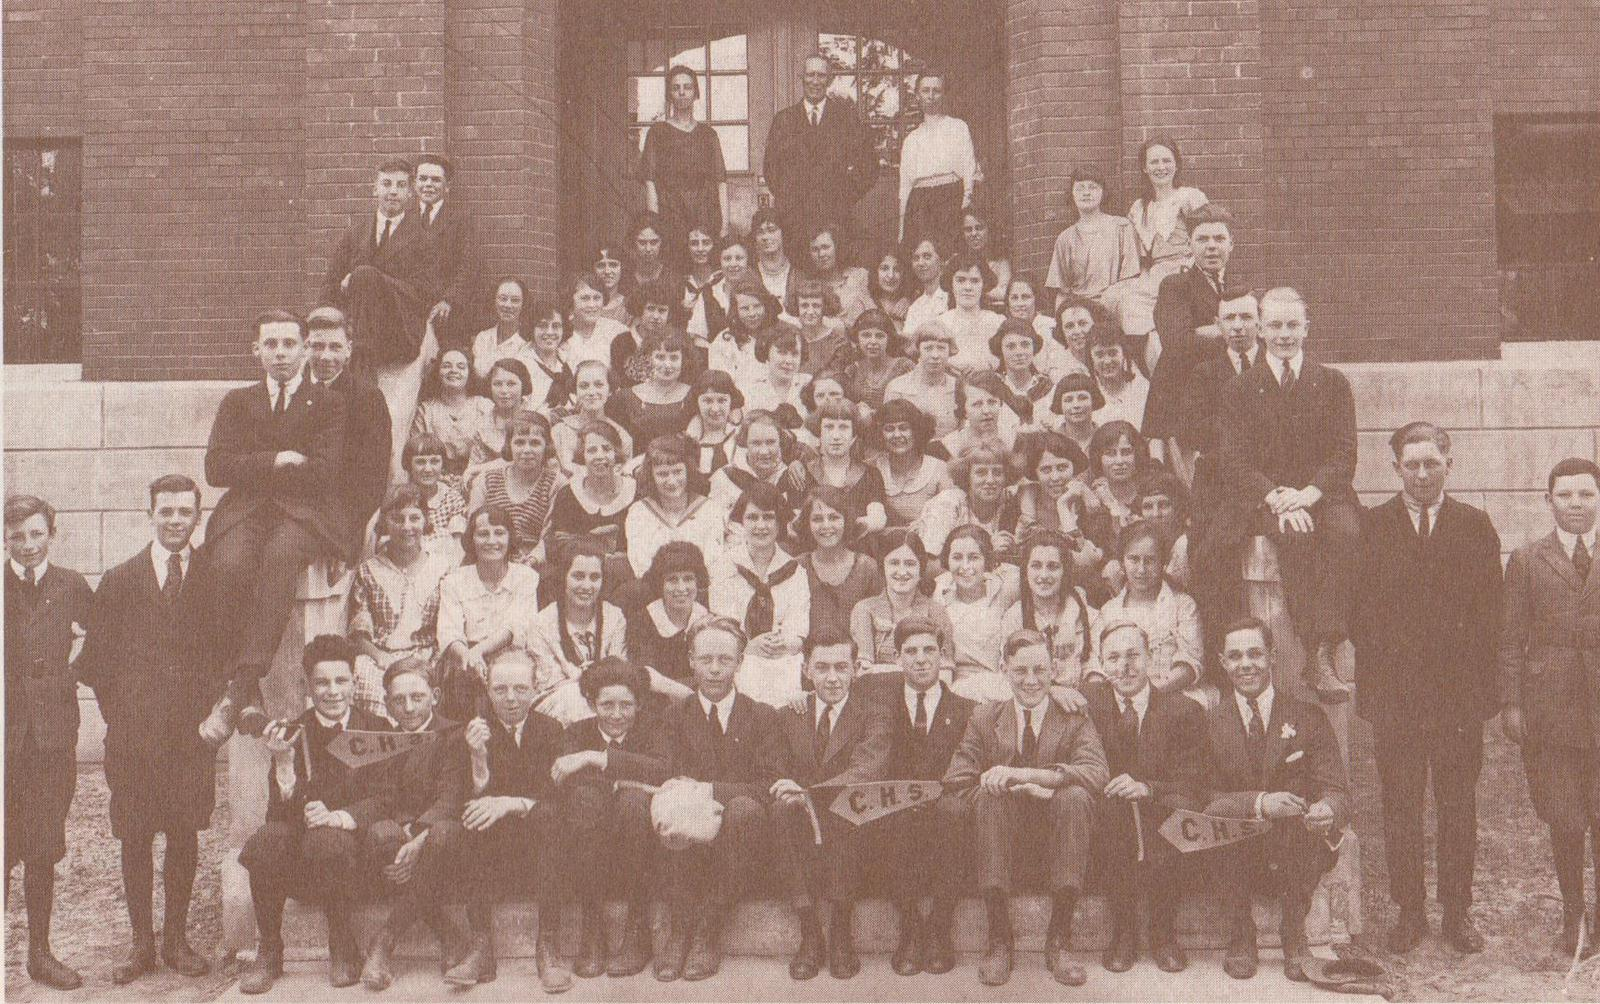 Photograph of Colborne High School, 1923